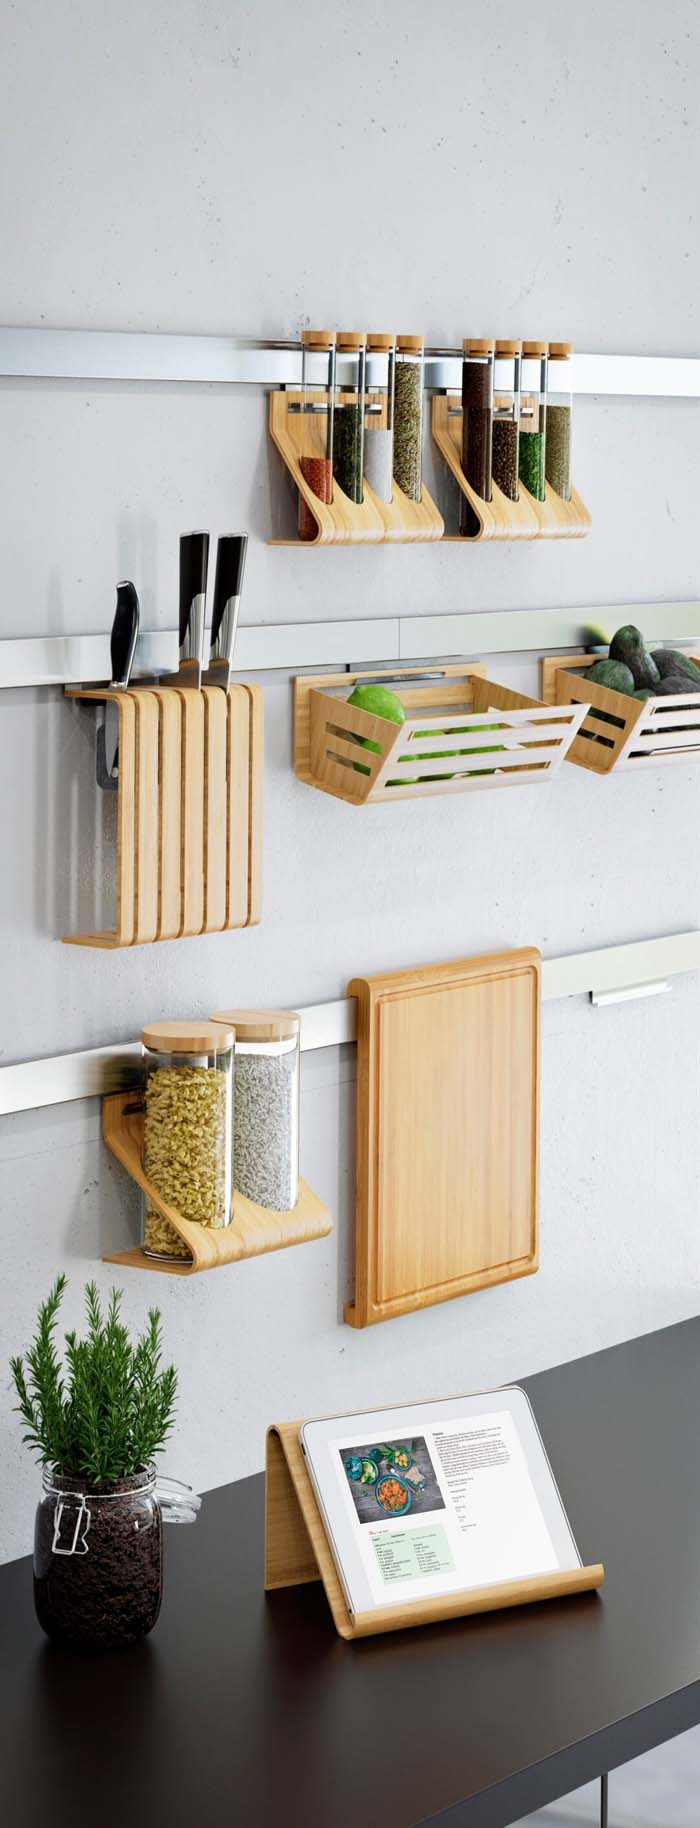 Wall Ledges for Wooden Kitchen Accessories #smallkitchen #storage #organization #decorhomeideas